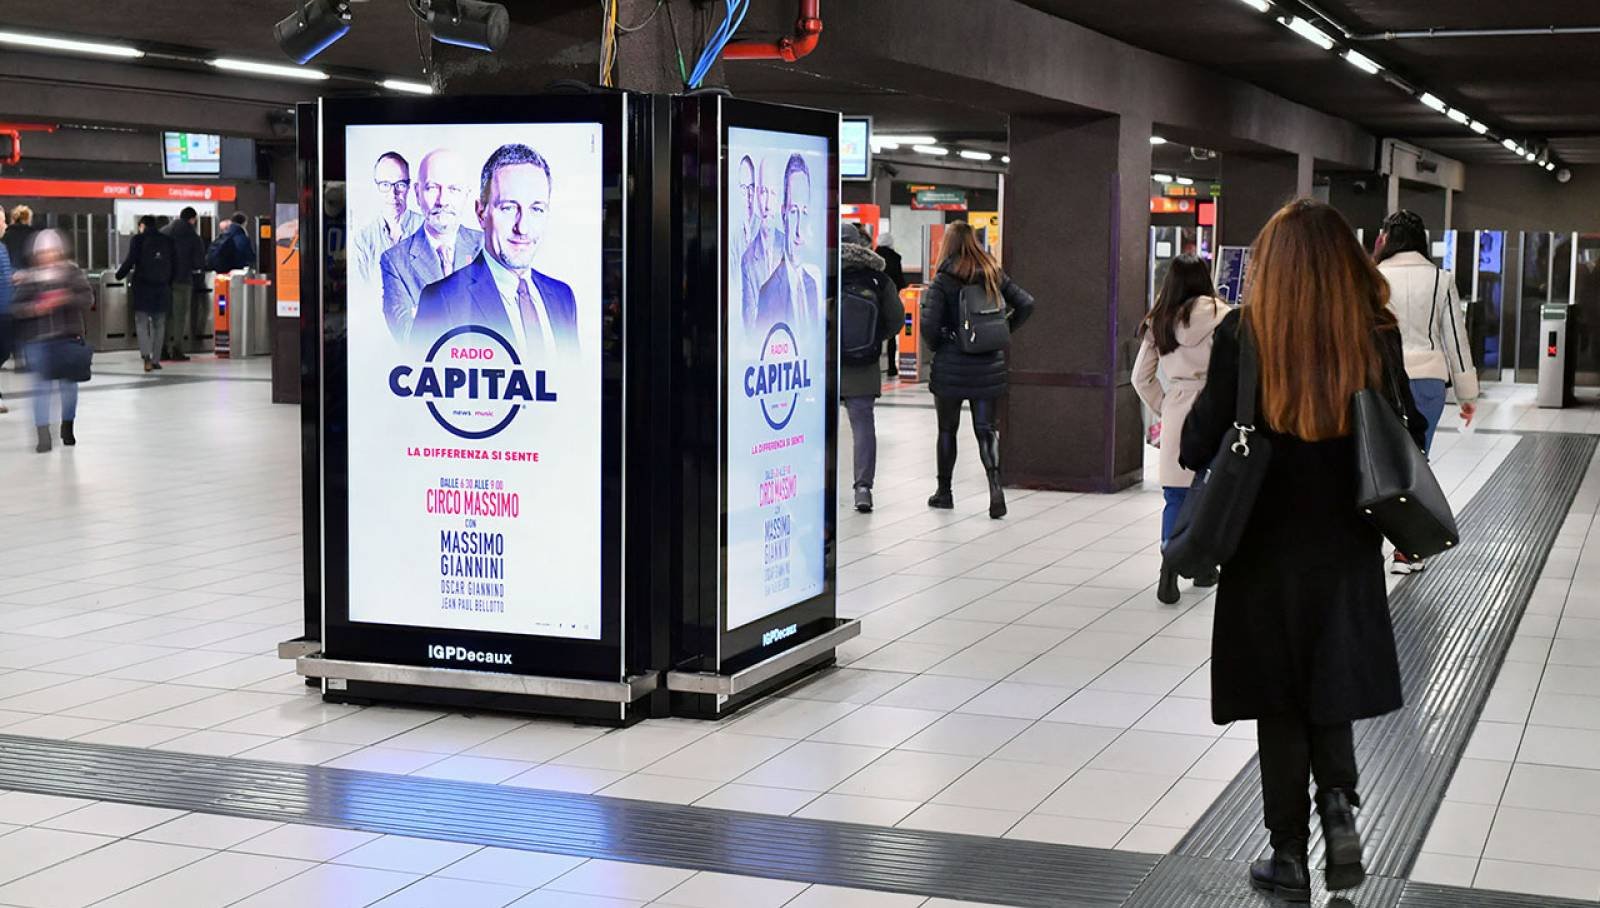 IGPDecaux OOH advertising in Milan Underground Vision Network for Radio Capital